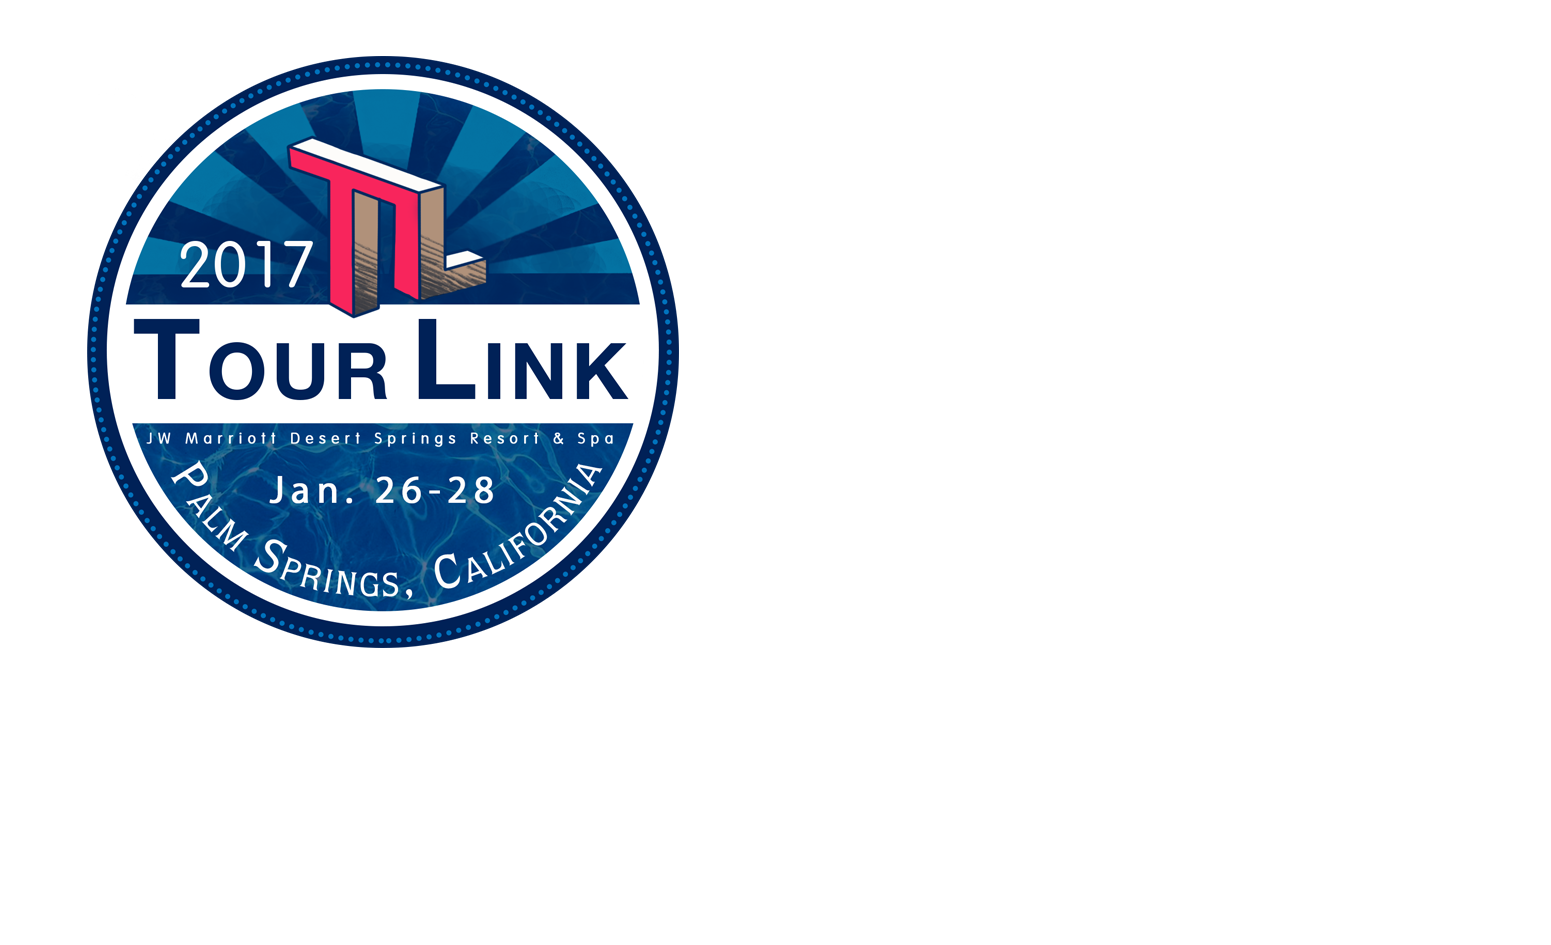 Tour Link Conference 2017